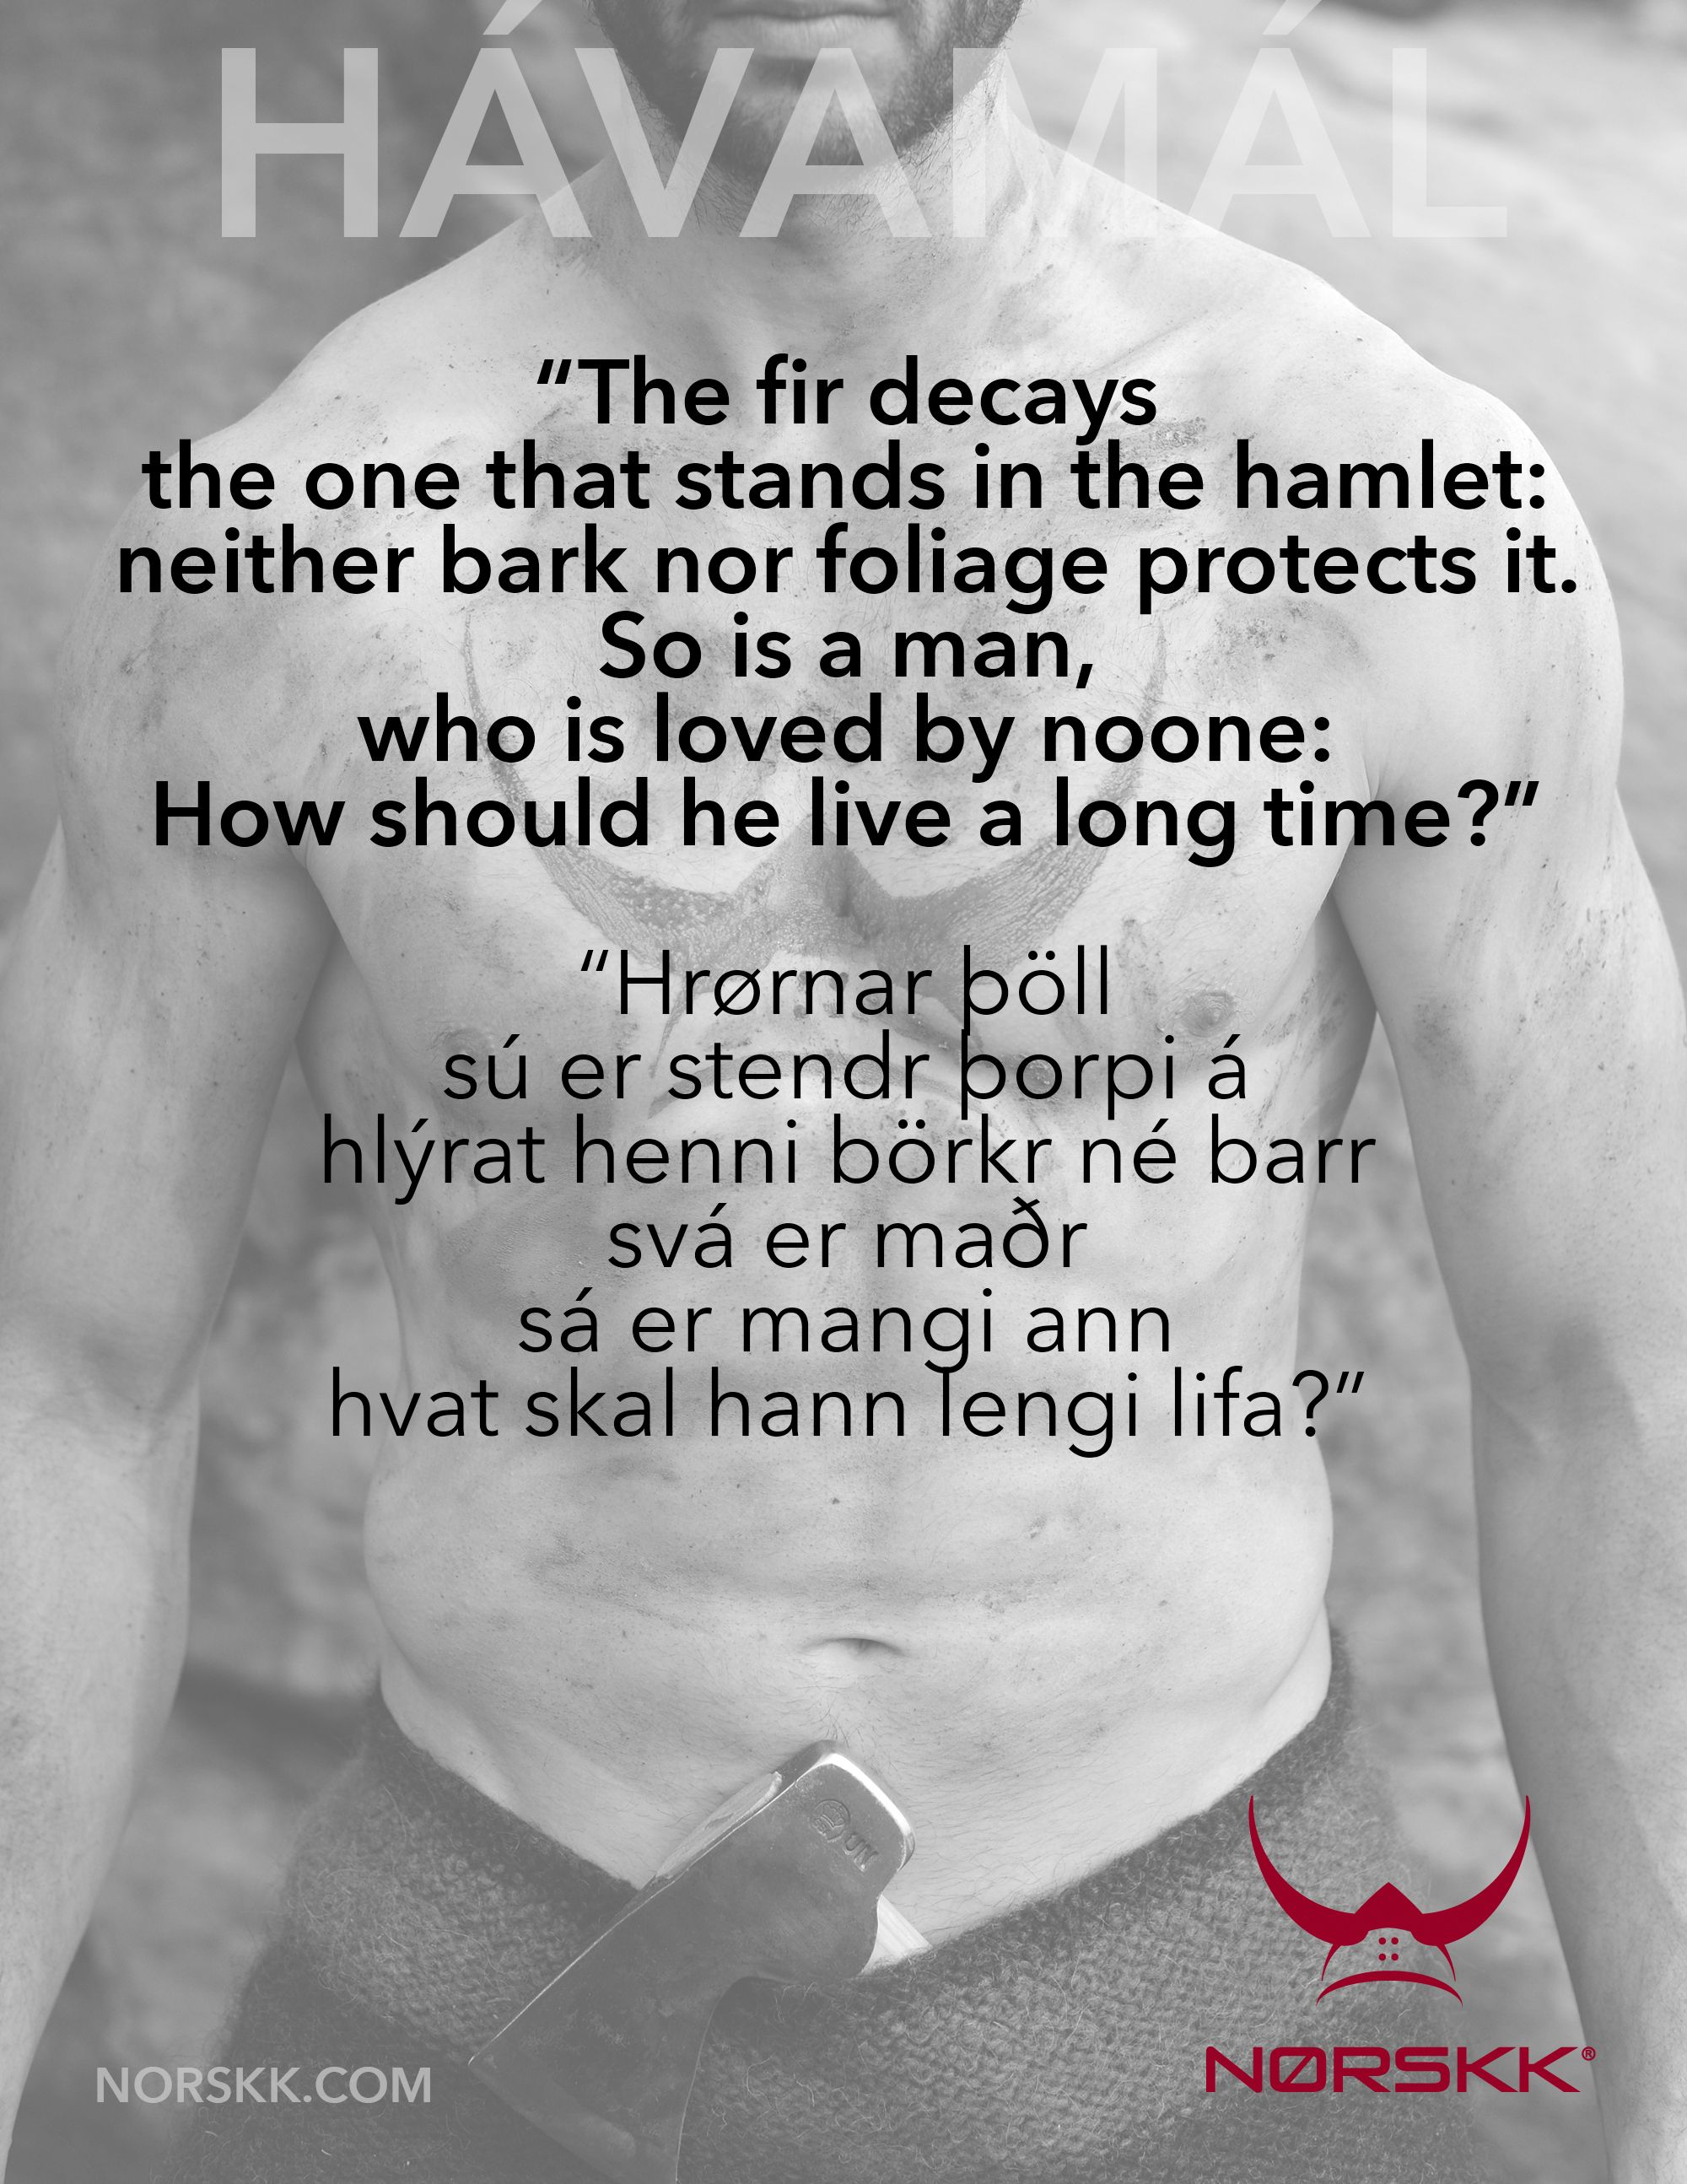 Chest tattoos for men quotes weekly hávamál havamal  being badass  pinterest  vikings